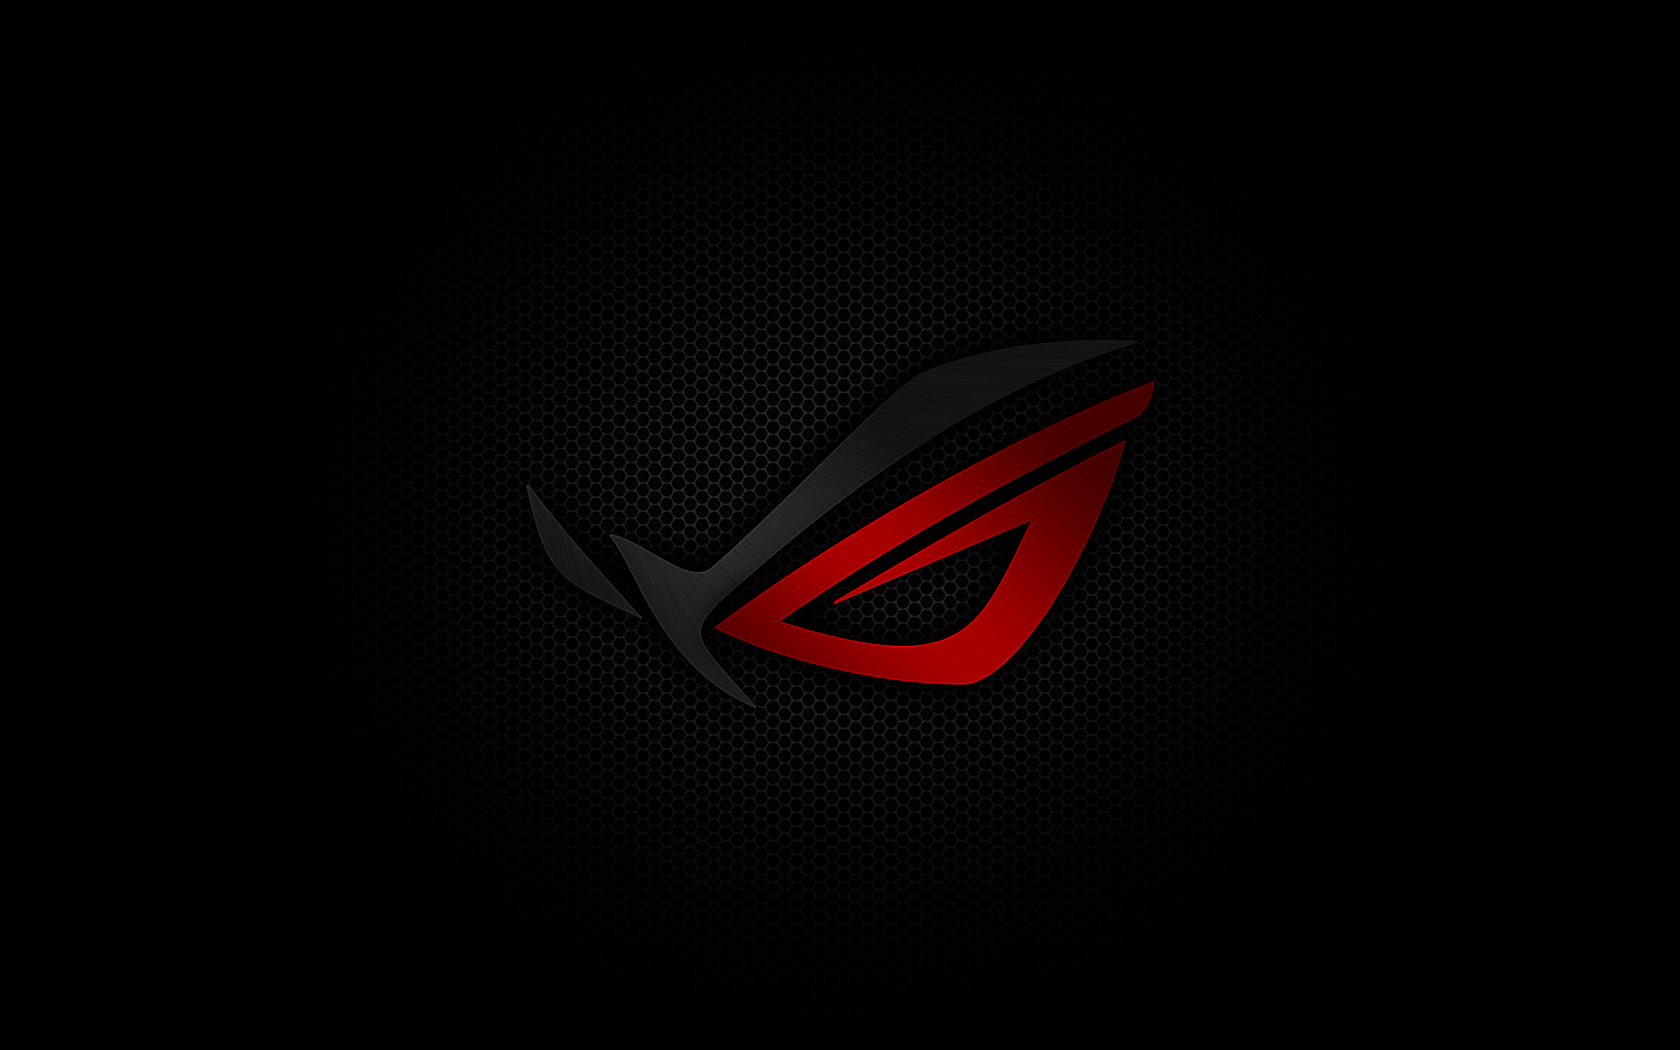 ASUS ROG Wallpaper Pack by BlaCkOuT1911 1680x1050